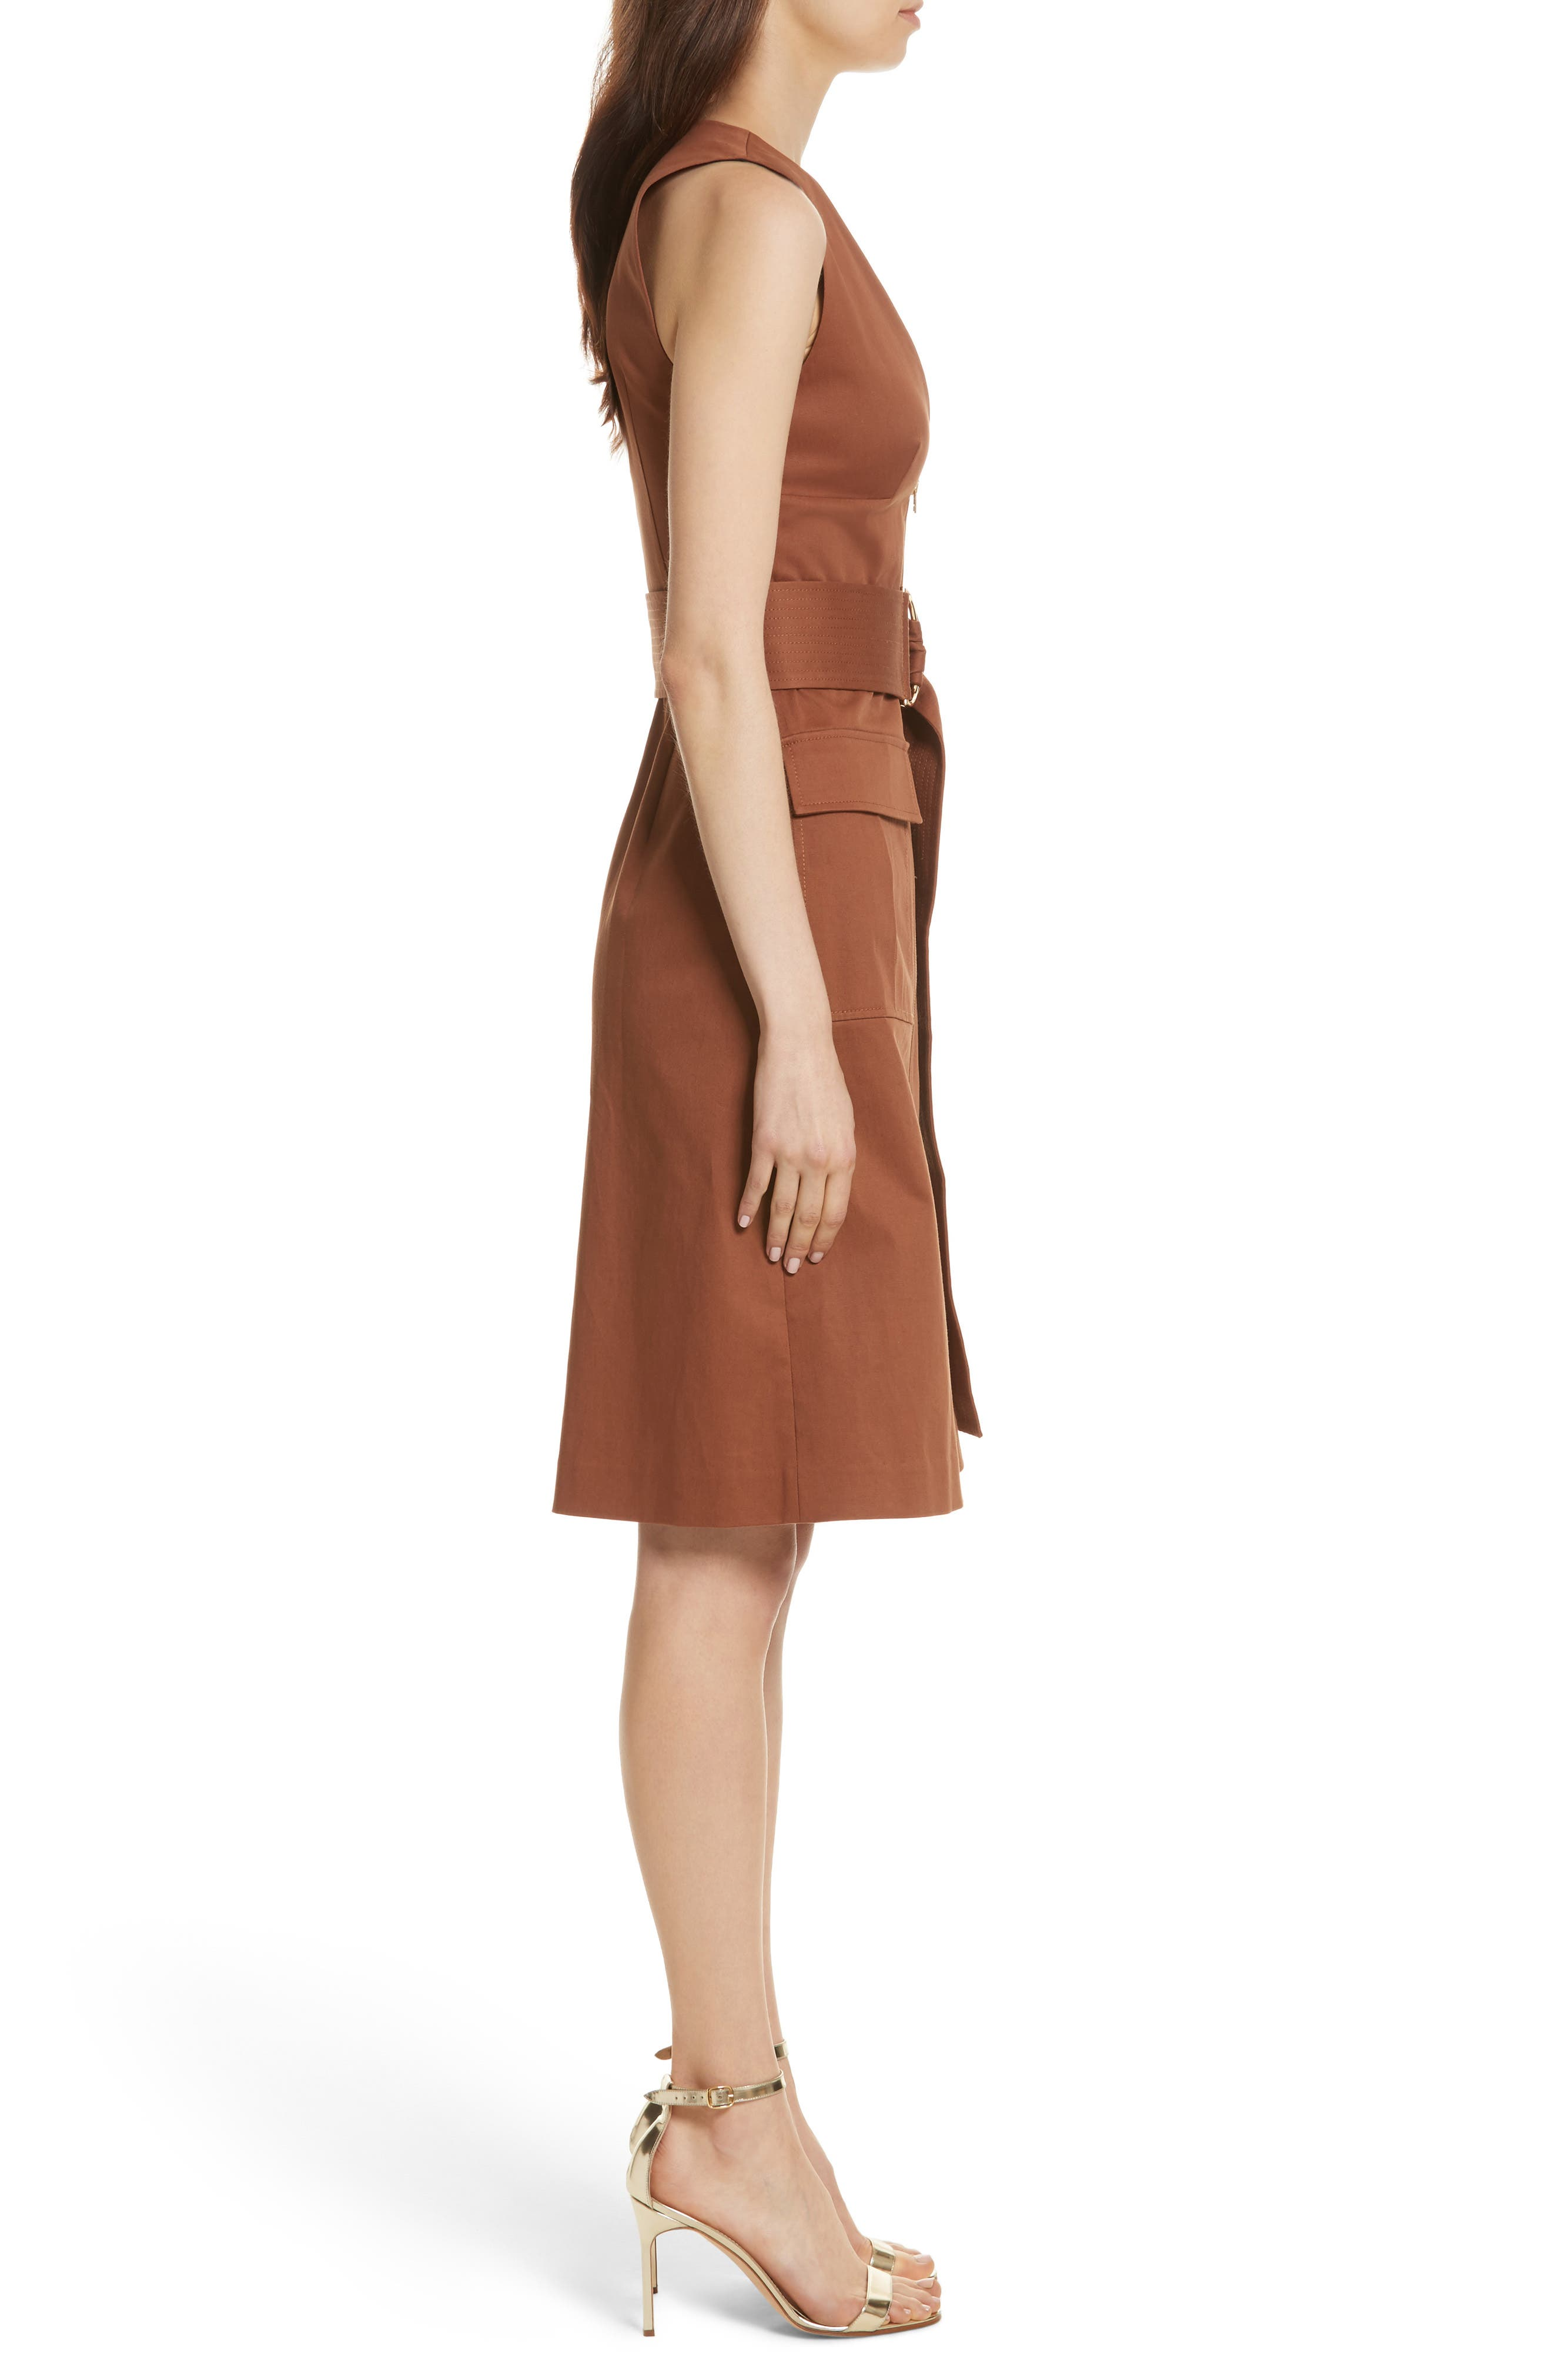 Diane von Furstenberg Zip Front Dress,                             Alternate thumbnail 3, color,                             203